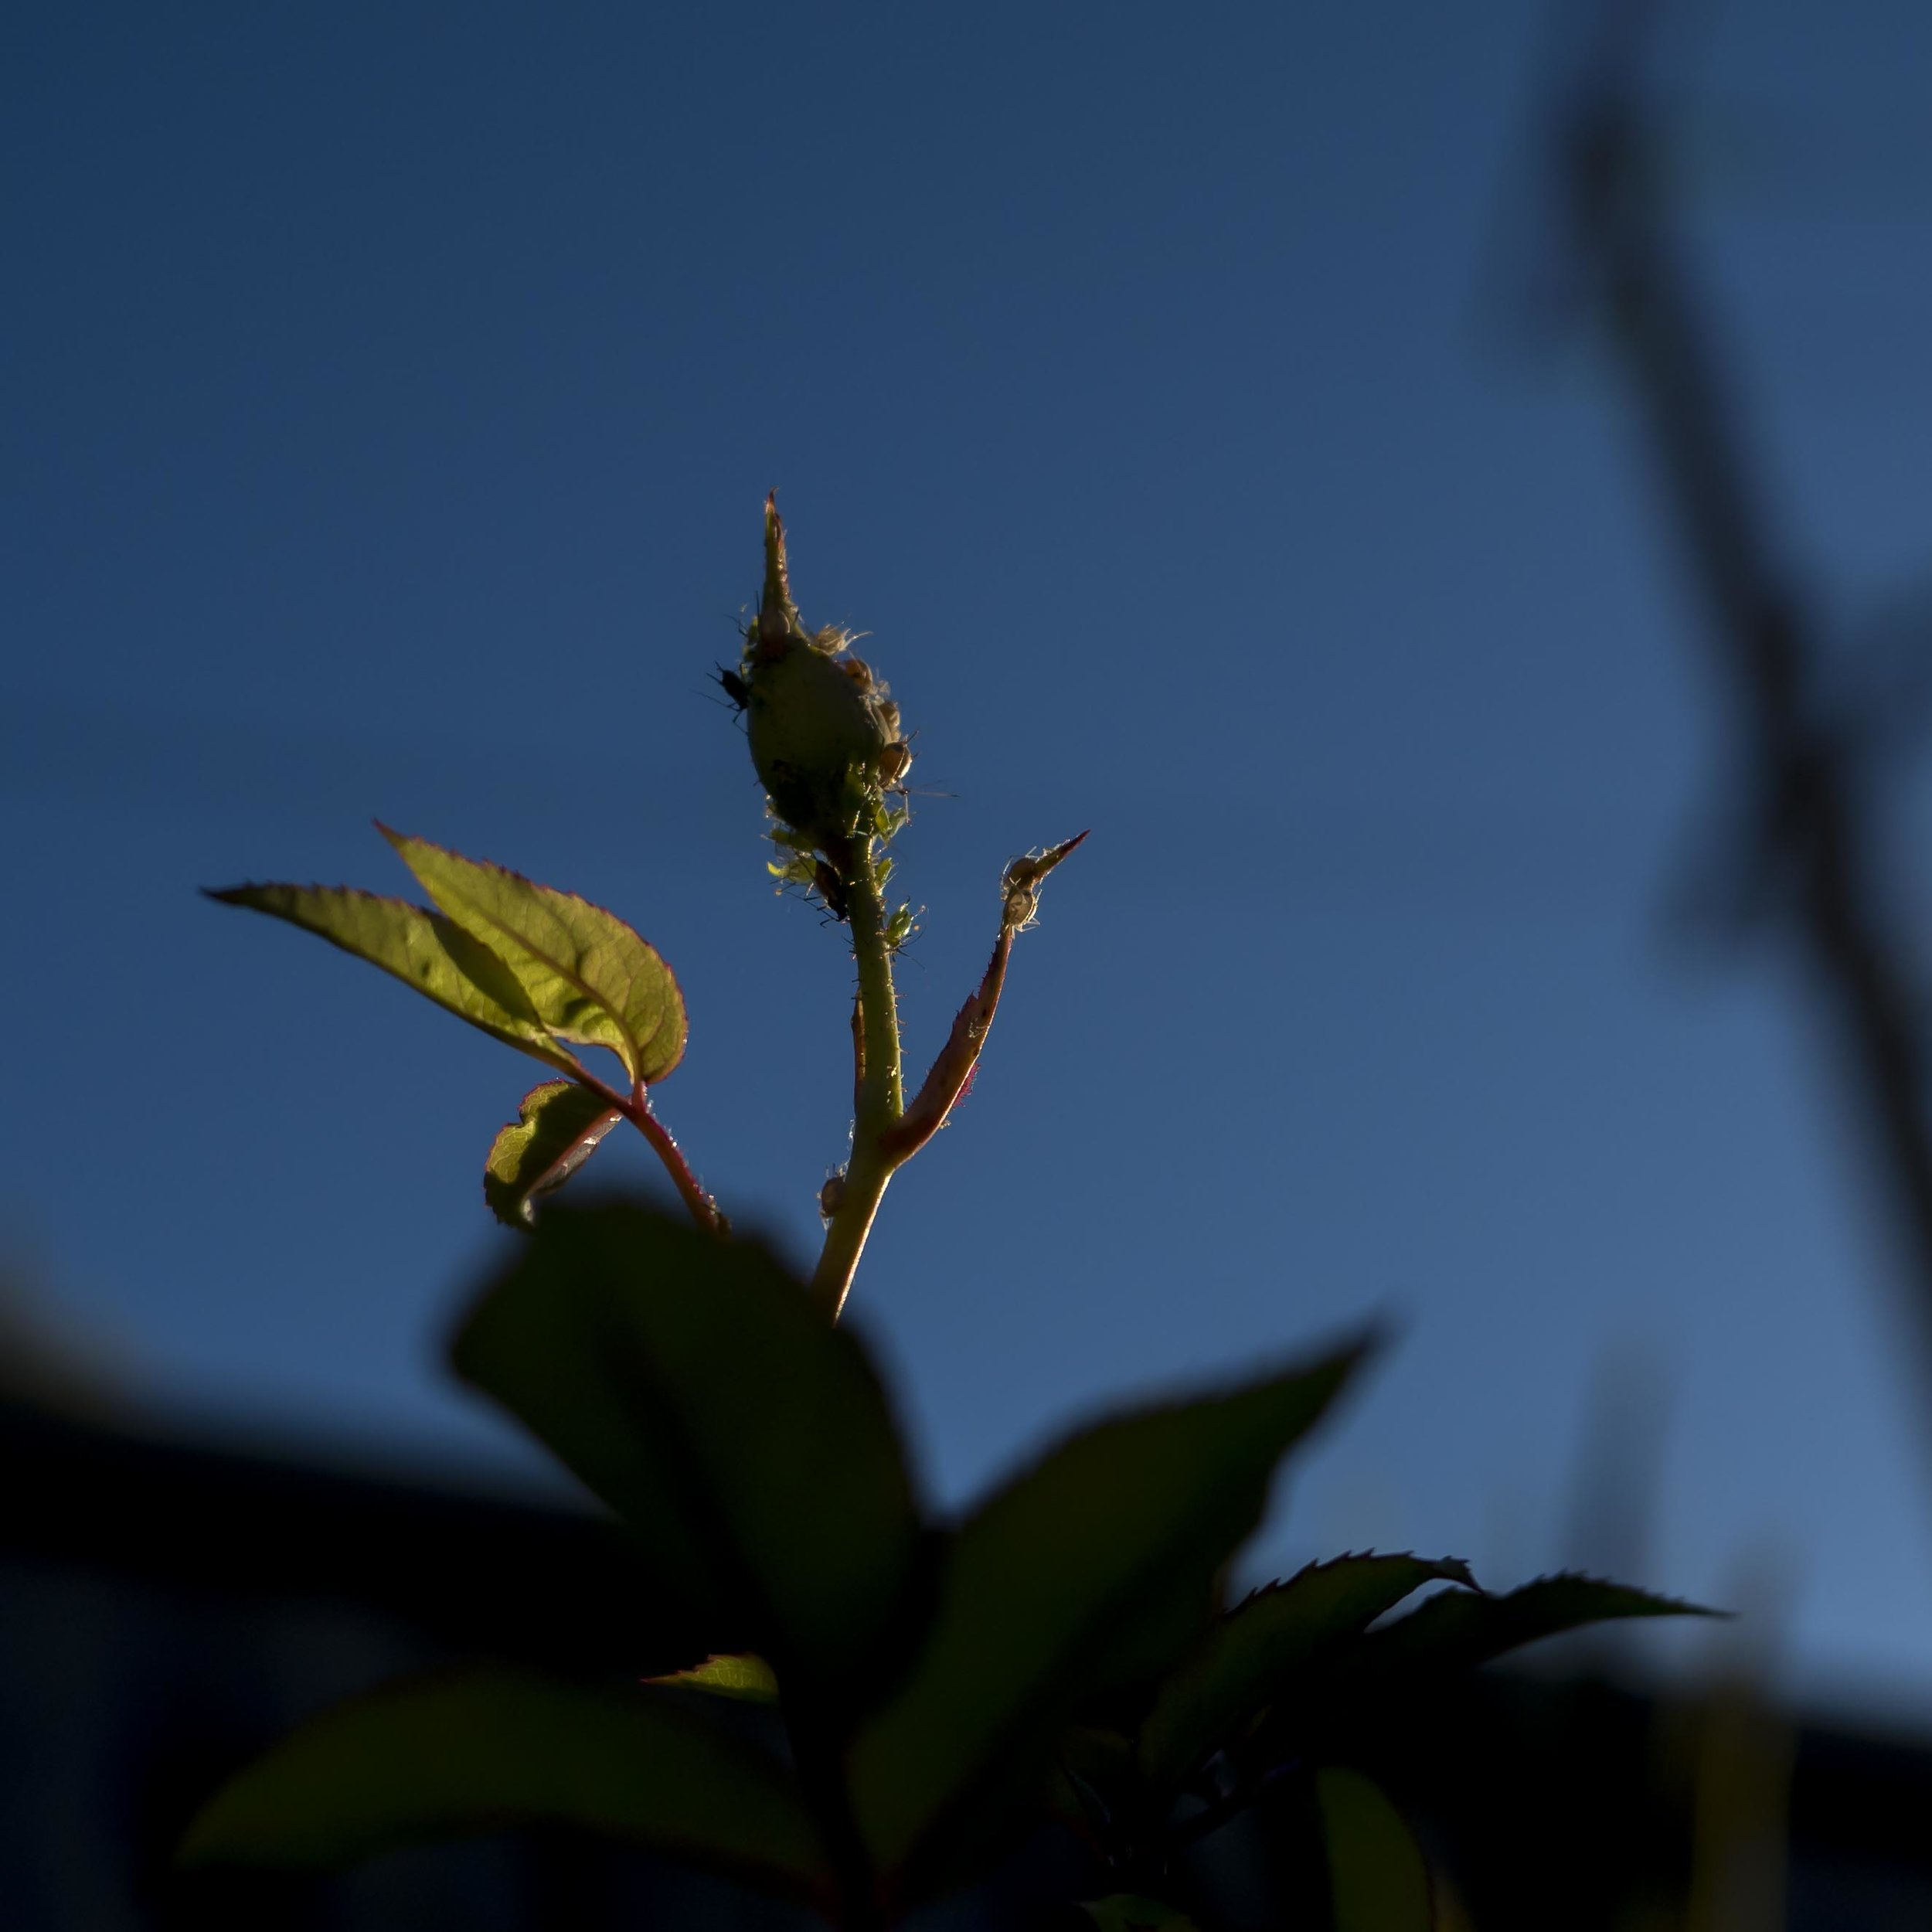 EM1 (fully embraced), 12-40 and Autumn light